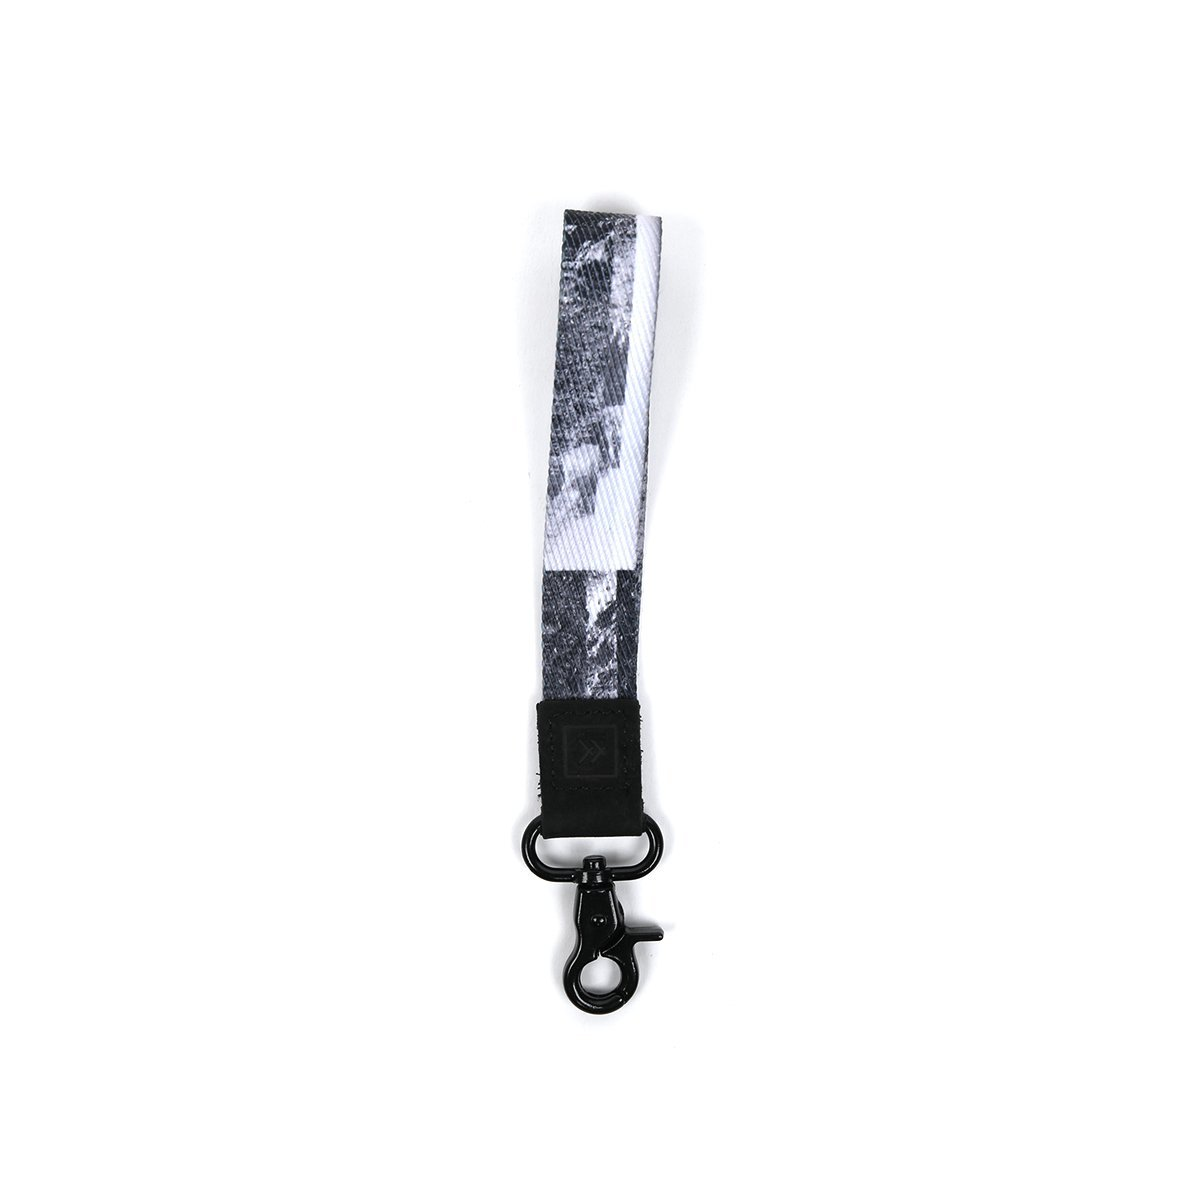 Backcountry Wrist Lanyard